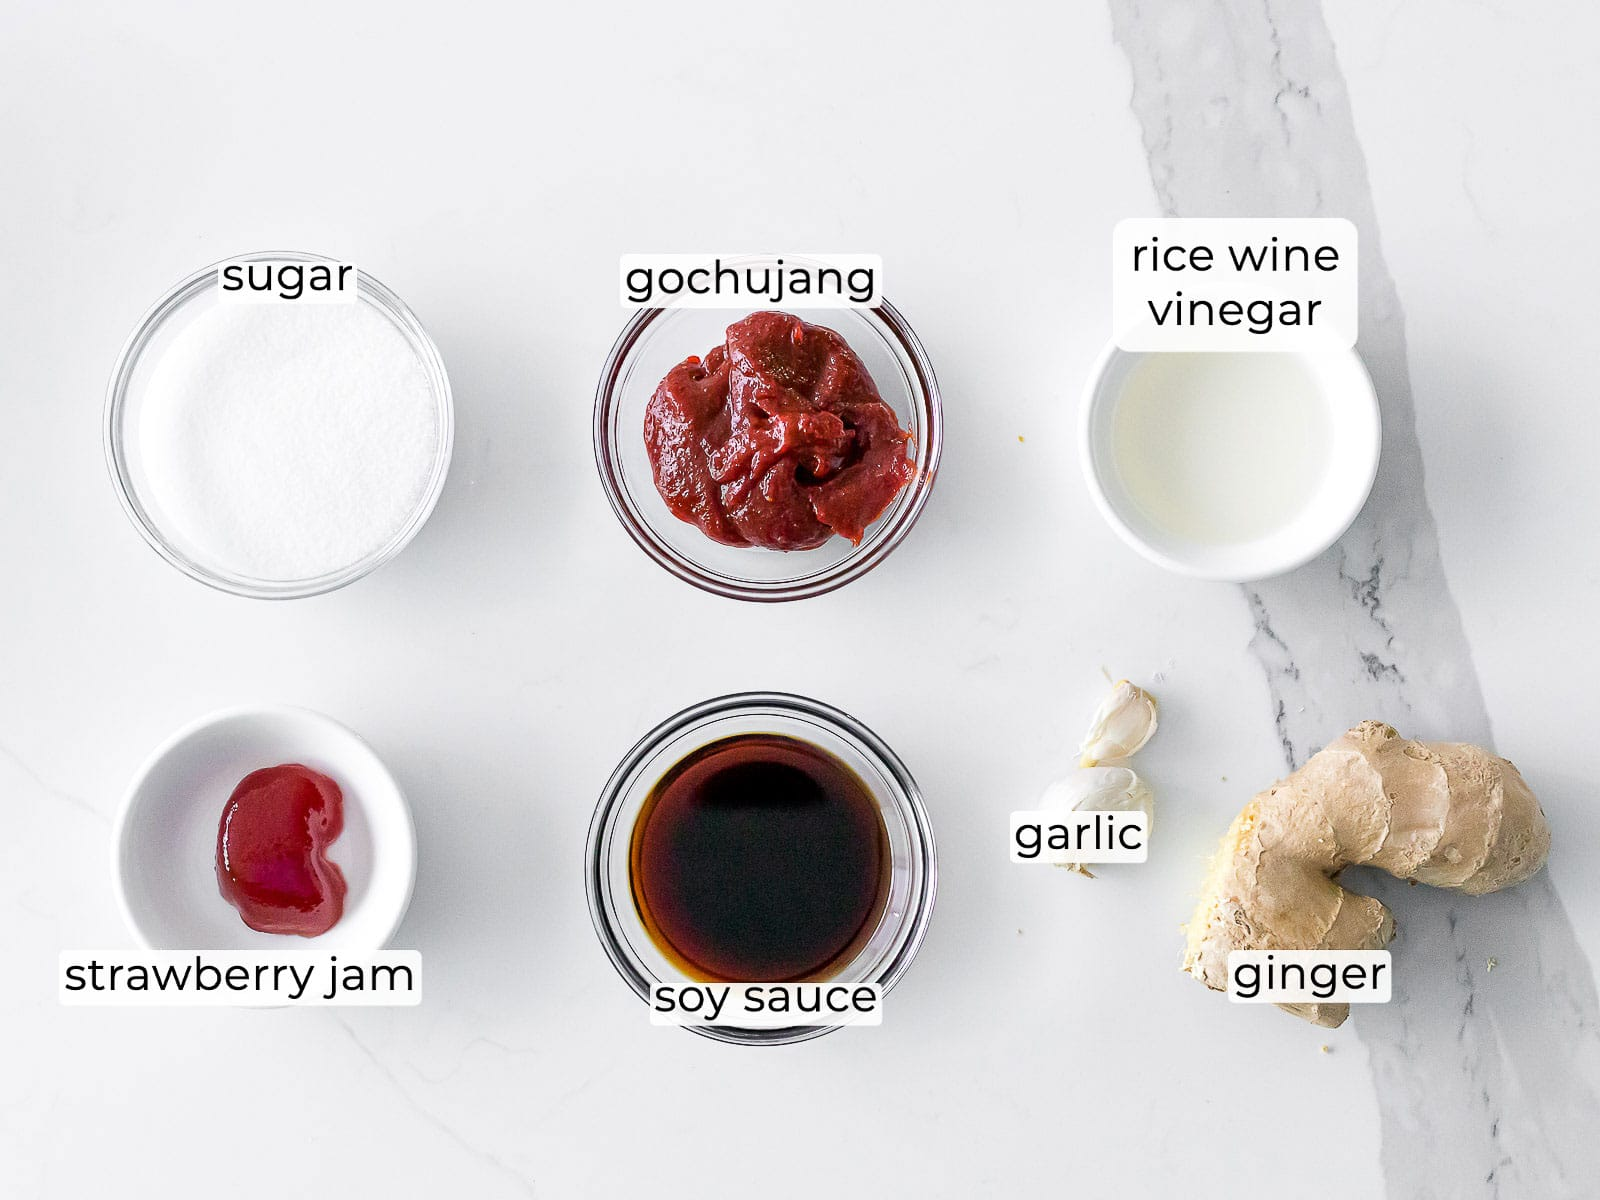 ingredients for gochujang sauce in small ramekins